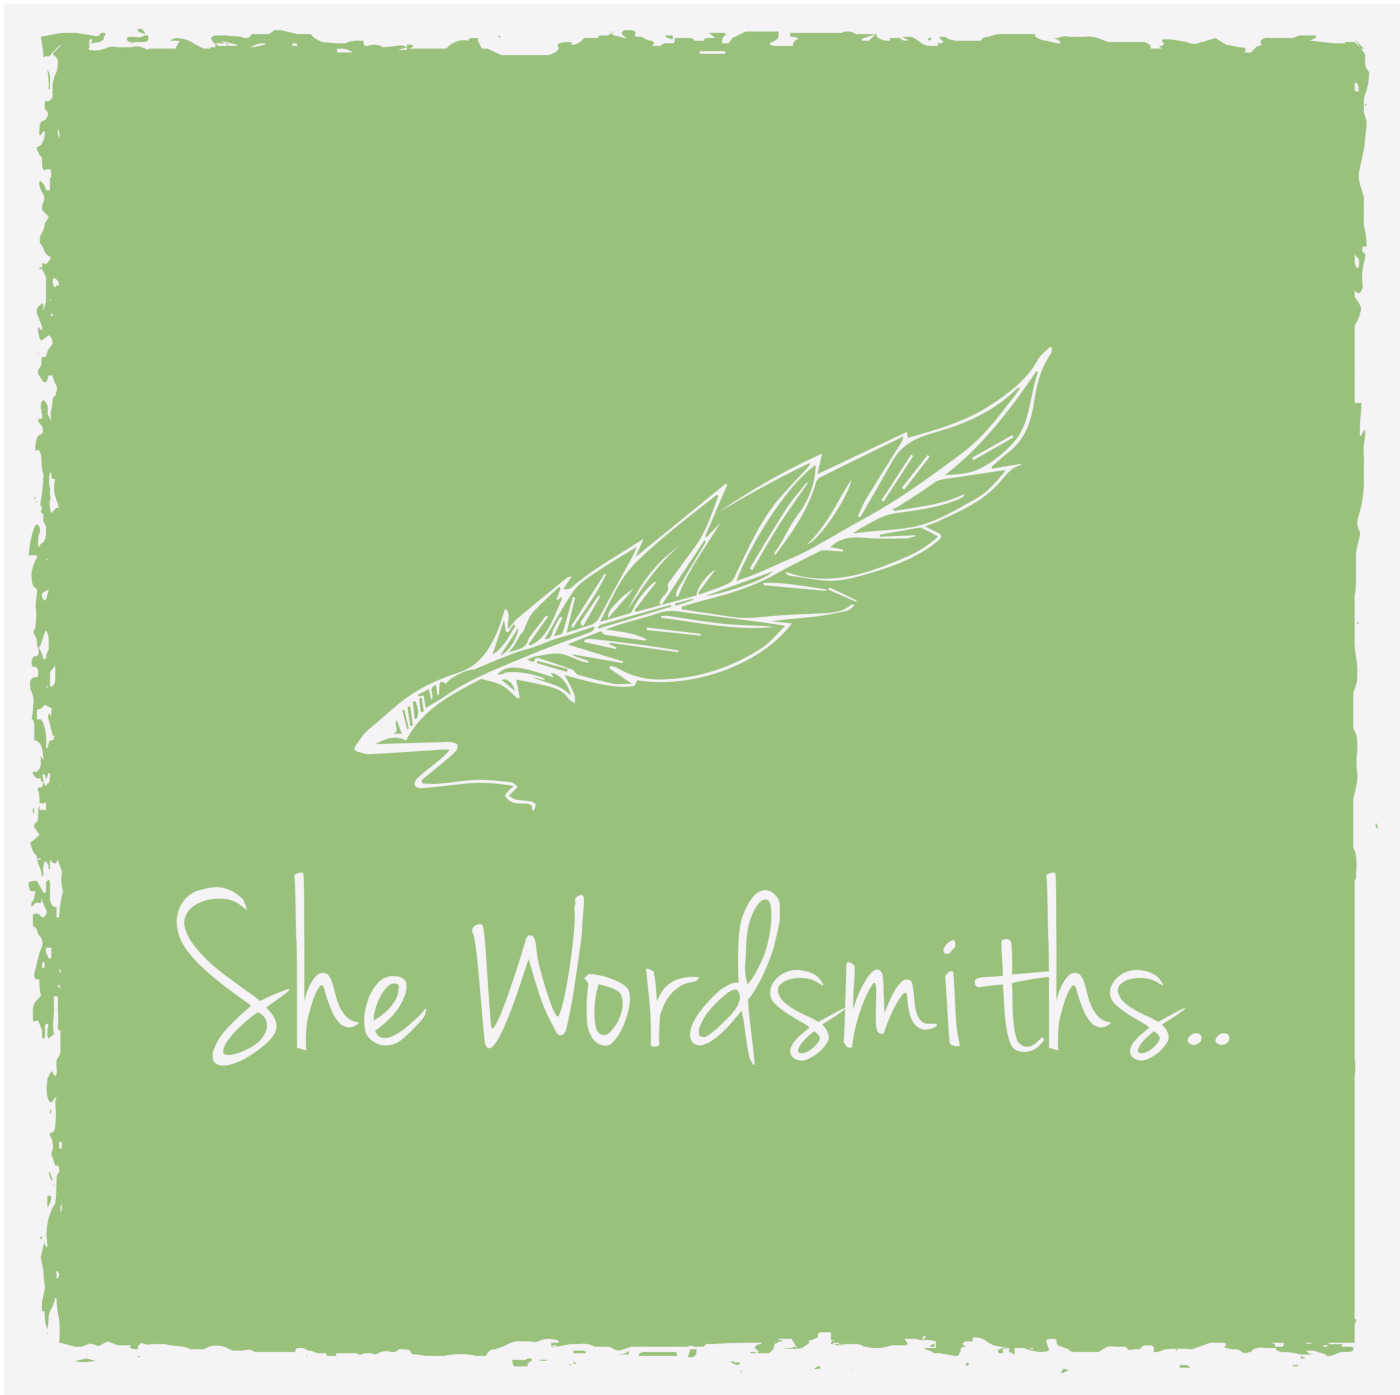 She Wordsmiths logo is a quill and text in ivory on a pistachio green background. She Wordsmiths ends in two ellipsis points